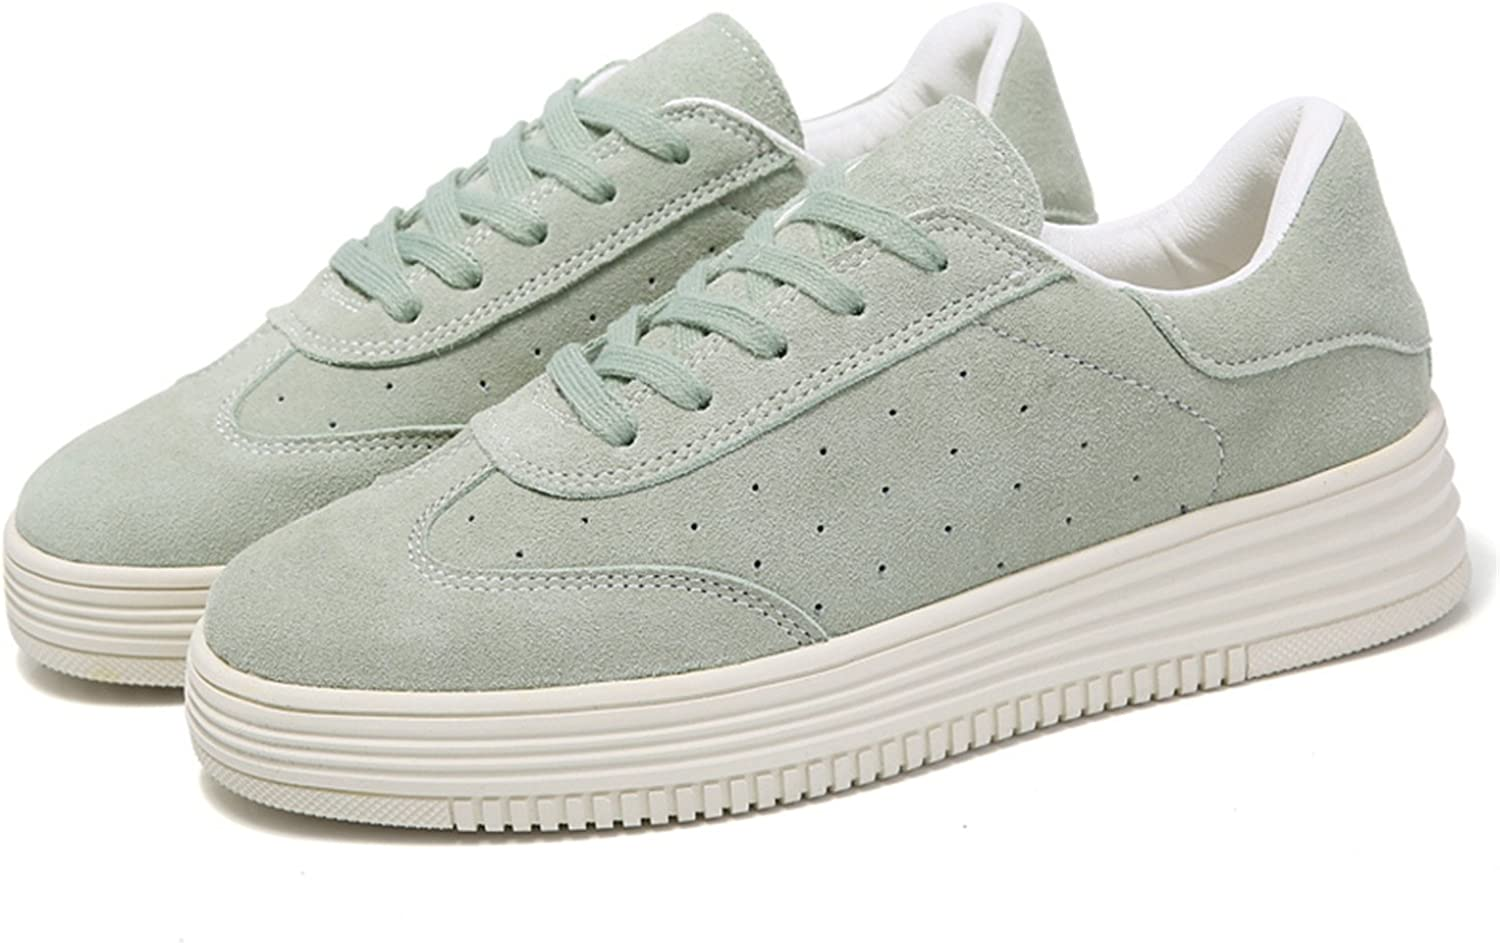 Reedbler Spring New Women shoes Flat Platform Casual shoes Leather Female Fashion Classic White Canvas shoes Increased Girls Plus Size